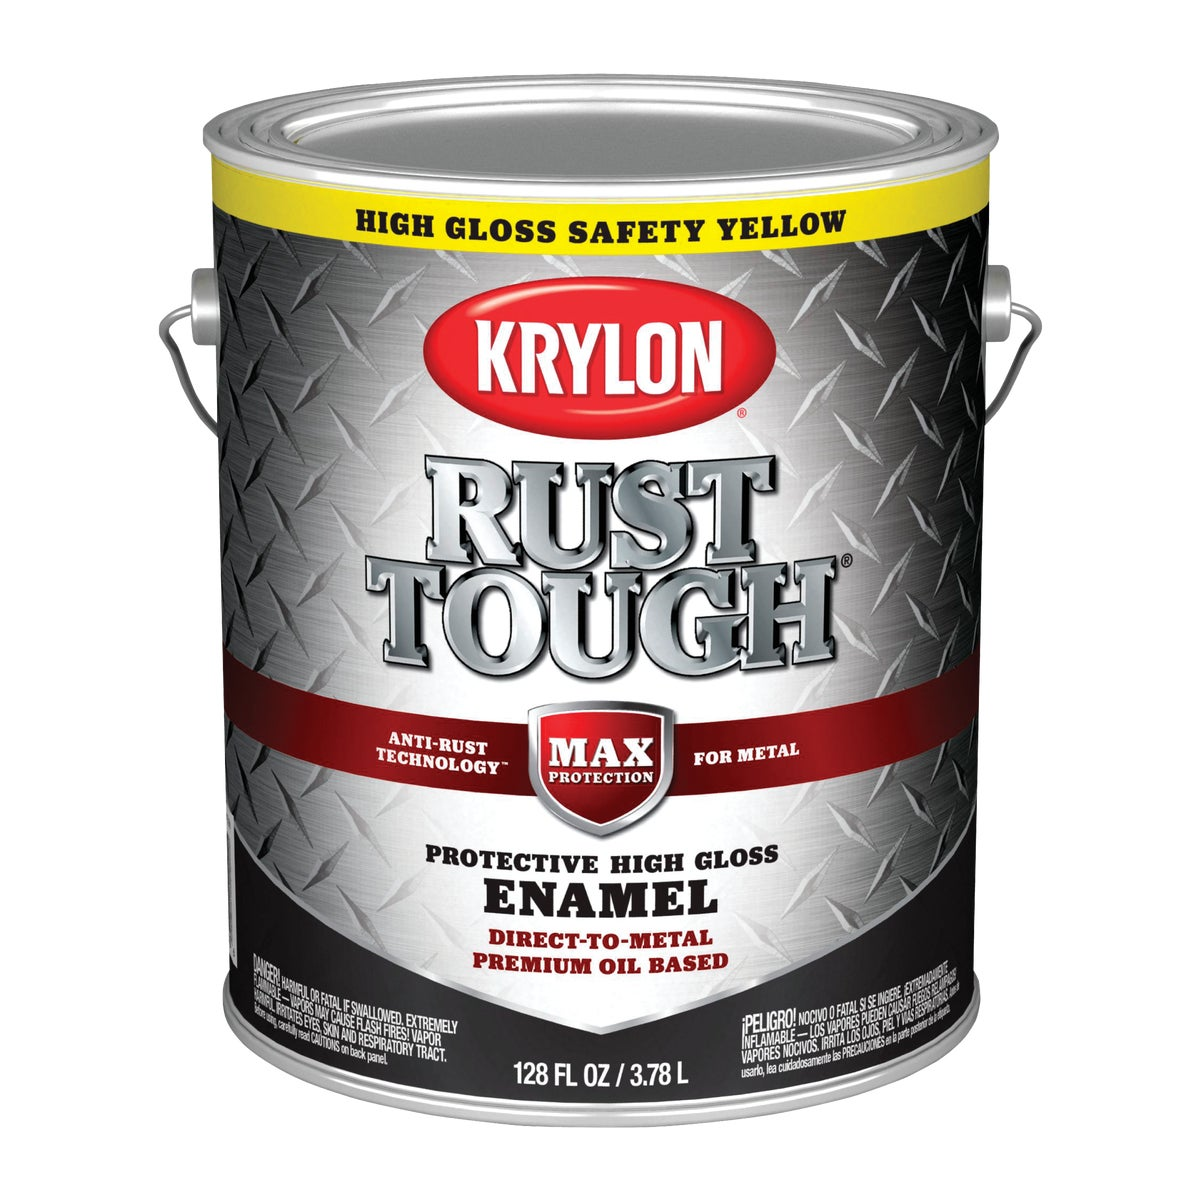 SAFETY YEL RUST ENAMEL - 044.0021845.007 by Valspar Corp